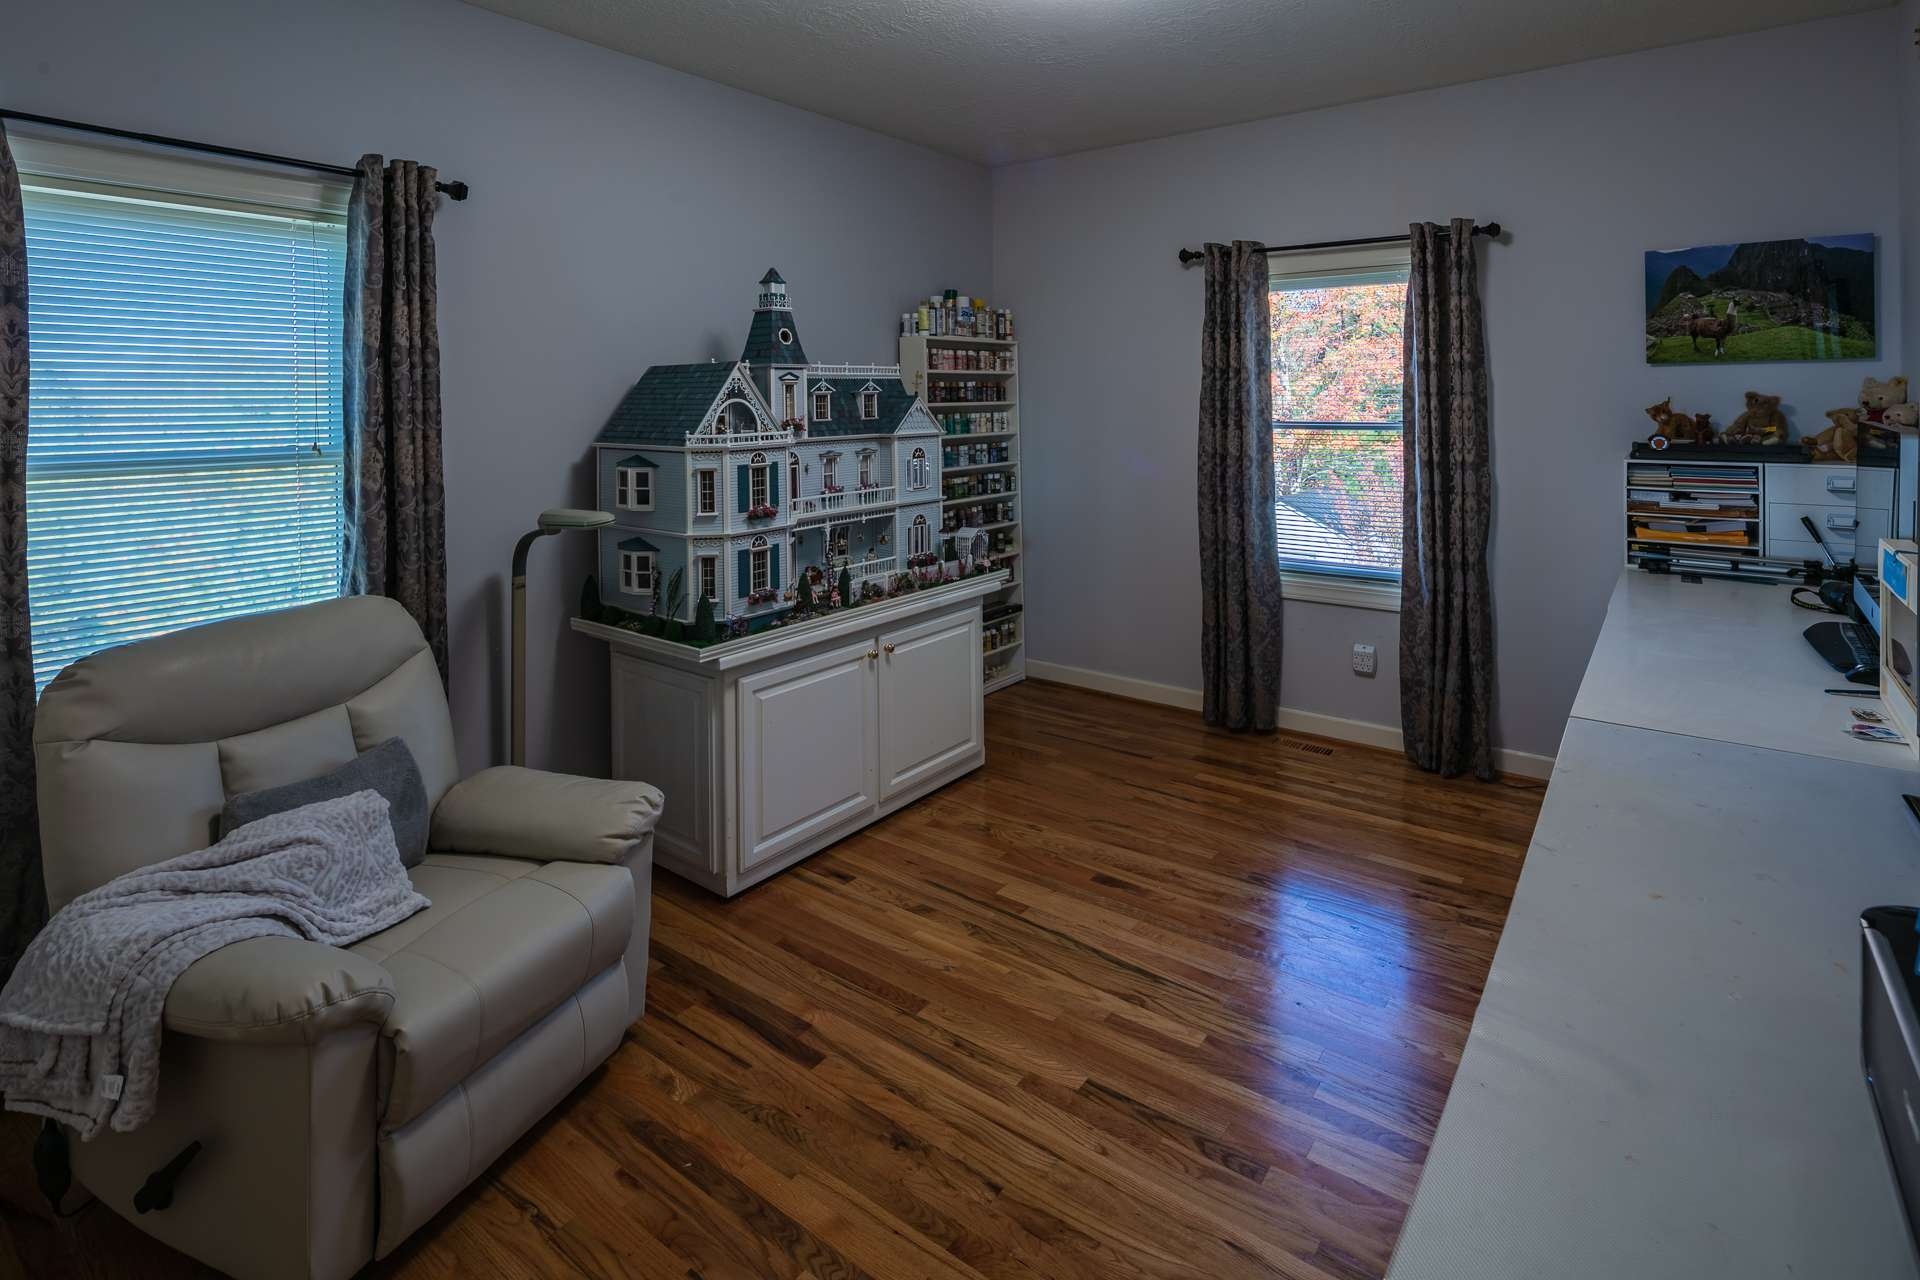 The main level offers a nicely sized bedroom with wood floors and a private bath.  This could be an option for the master suite.  The current owners use this space for artistry and creativity.